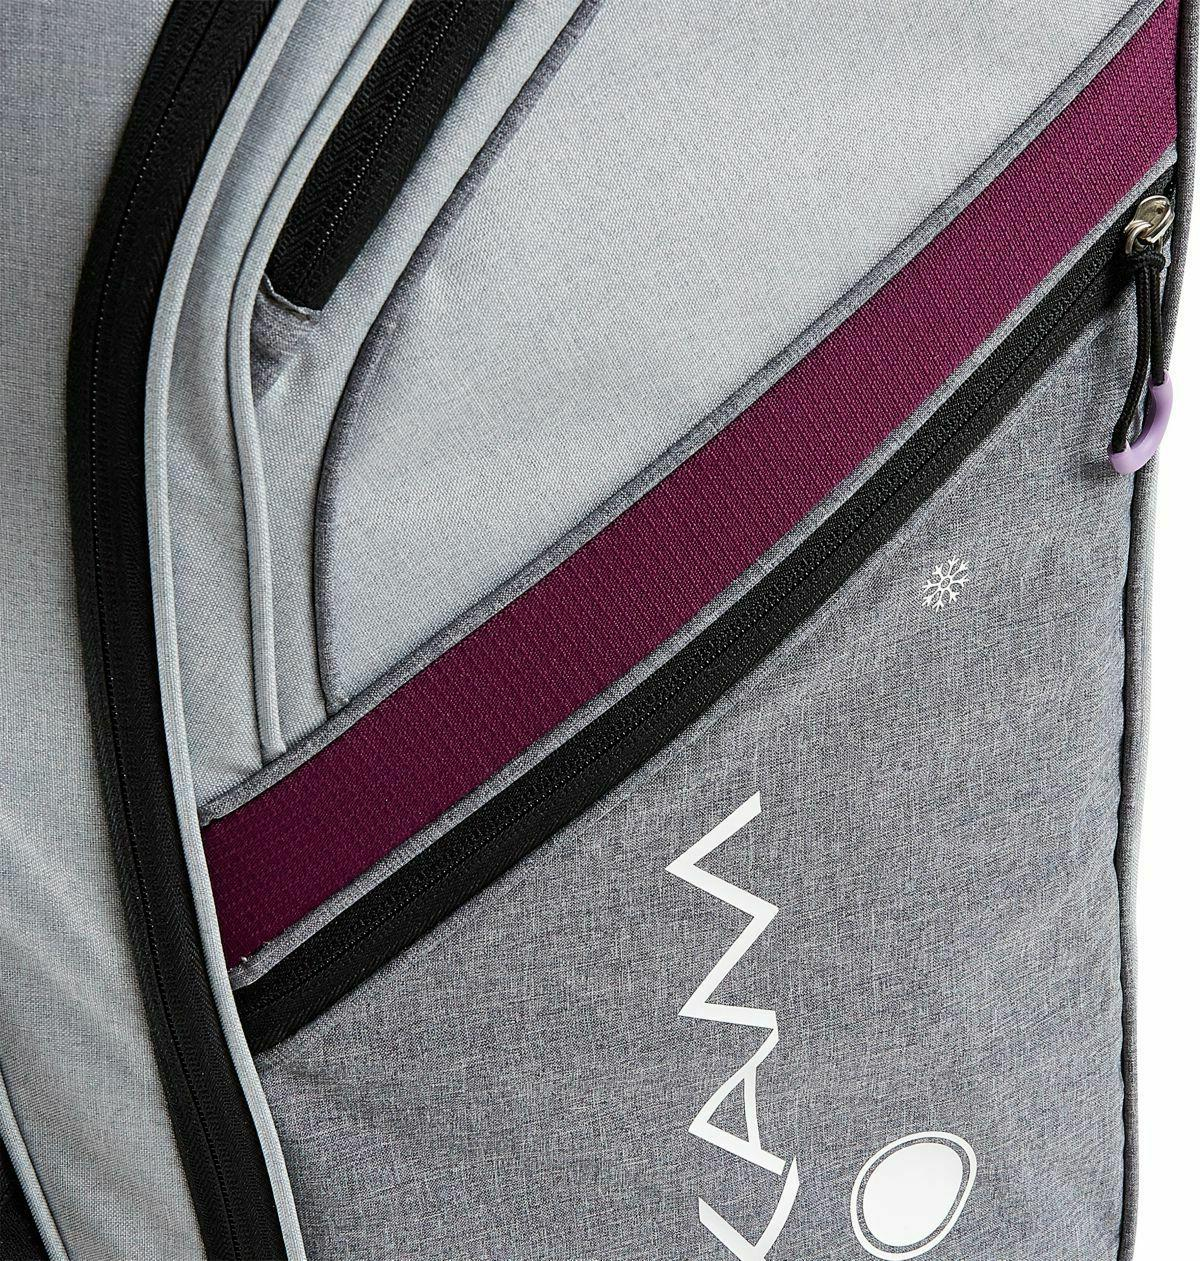 New Maxfli Cart Bag 2019 Honors Plus 14-Way - Gray/Purple